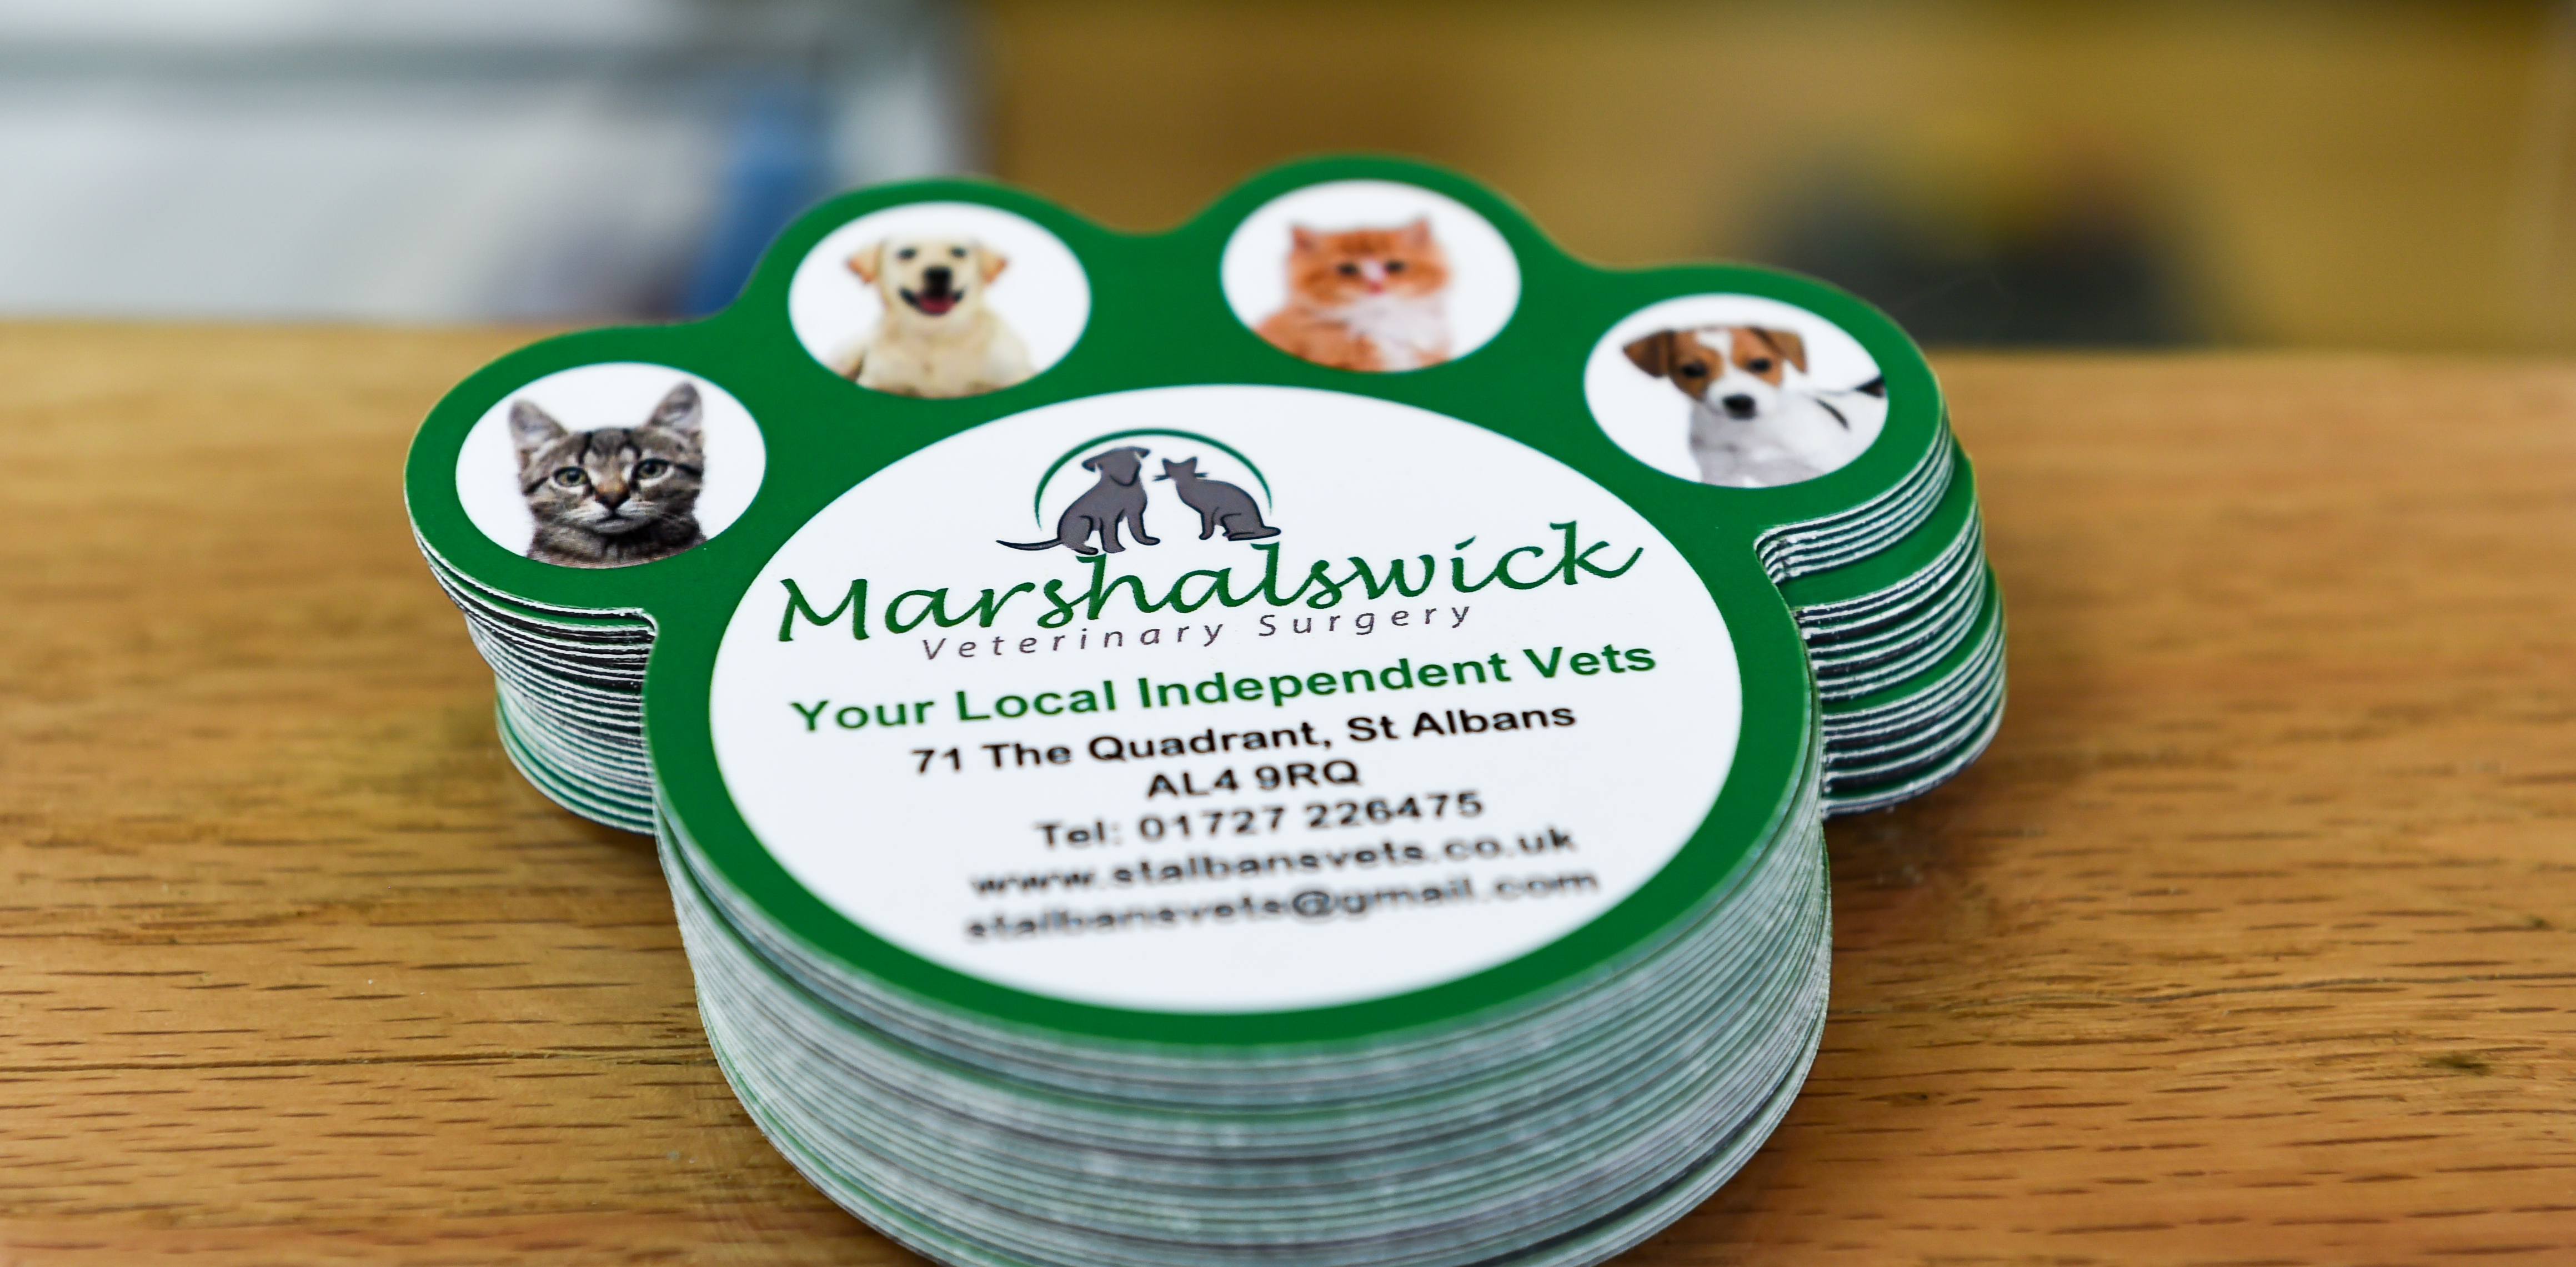 Register with the Marshalswick Veterinary Surgery